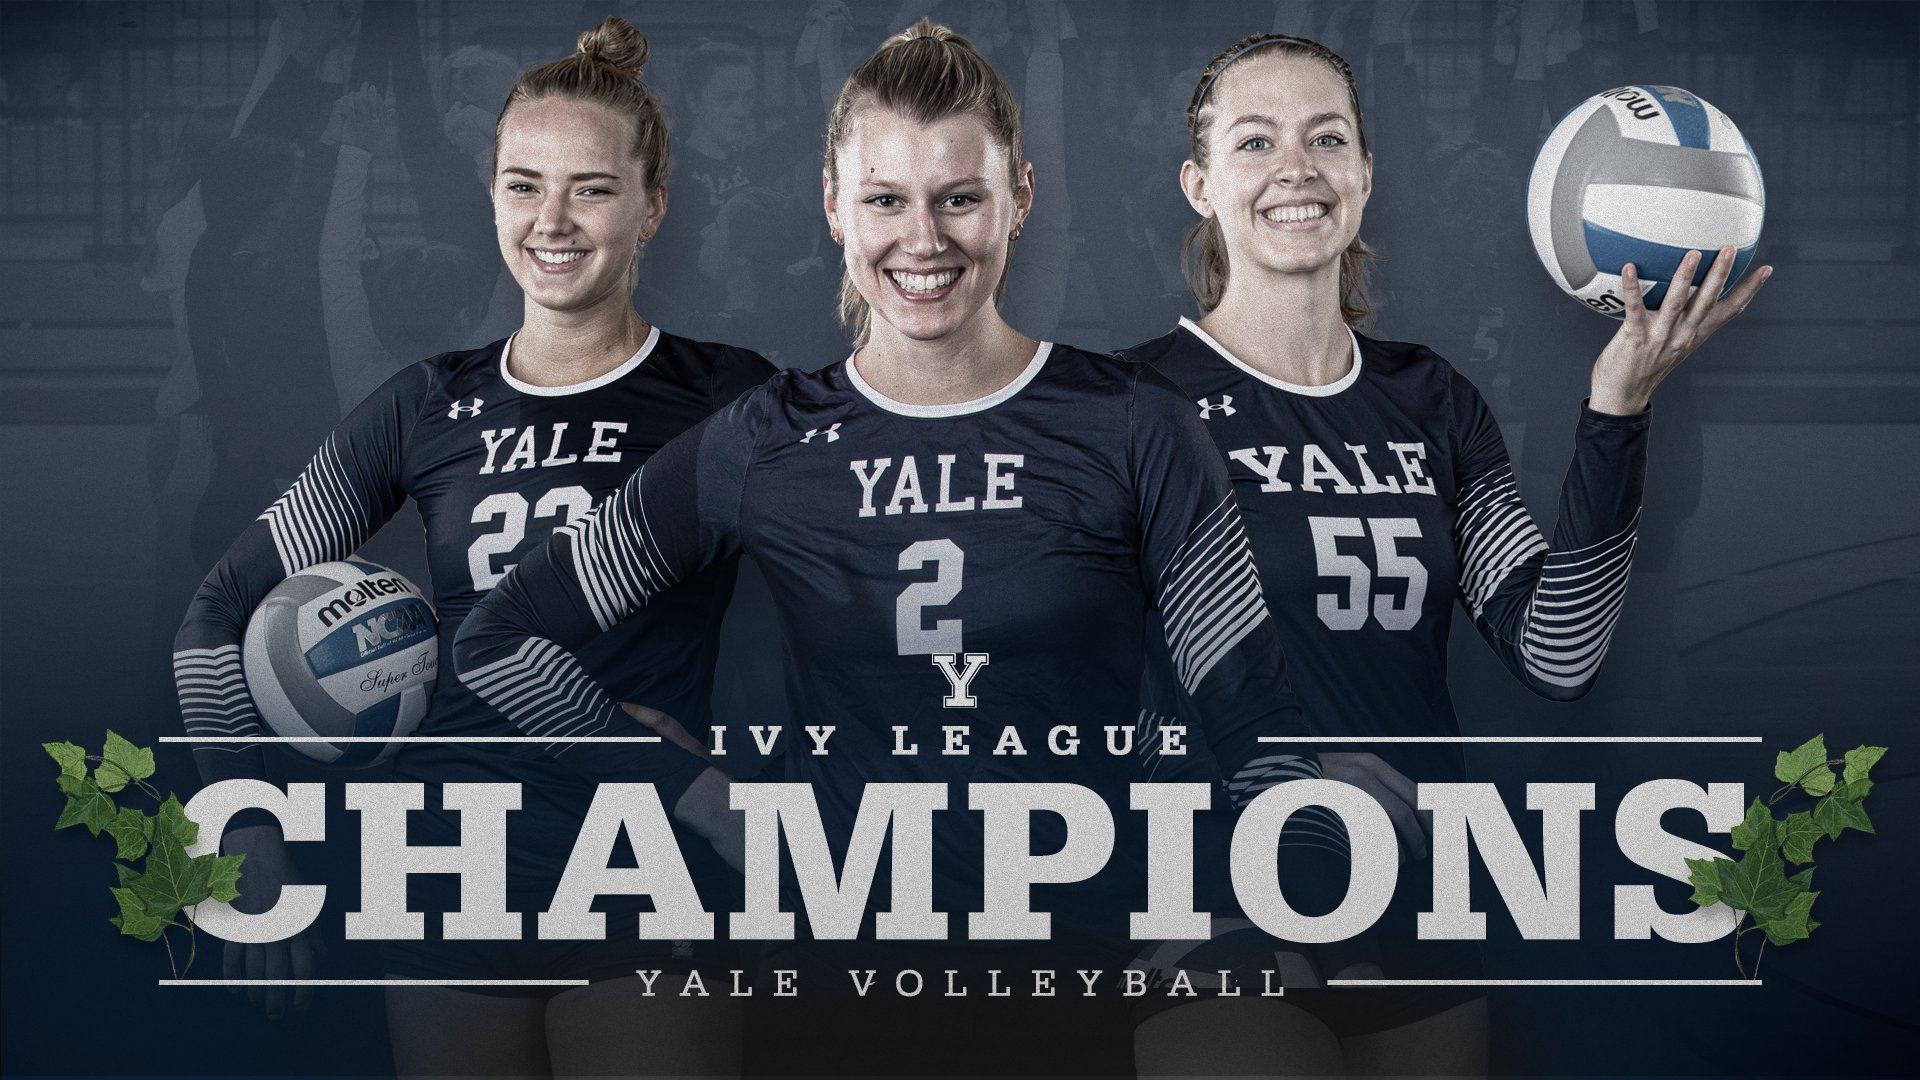 <h4>November 2019</h4><h6>Congrats to Ellis DeJardin and her teammates for being the Ivy League Champions.</h6>